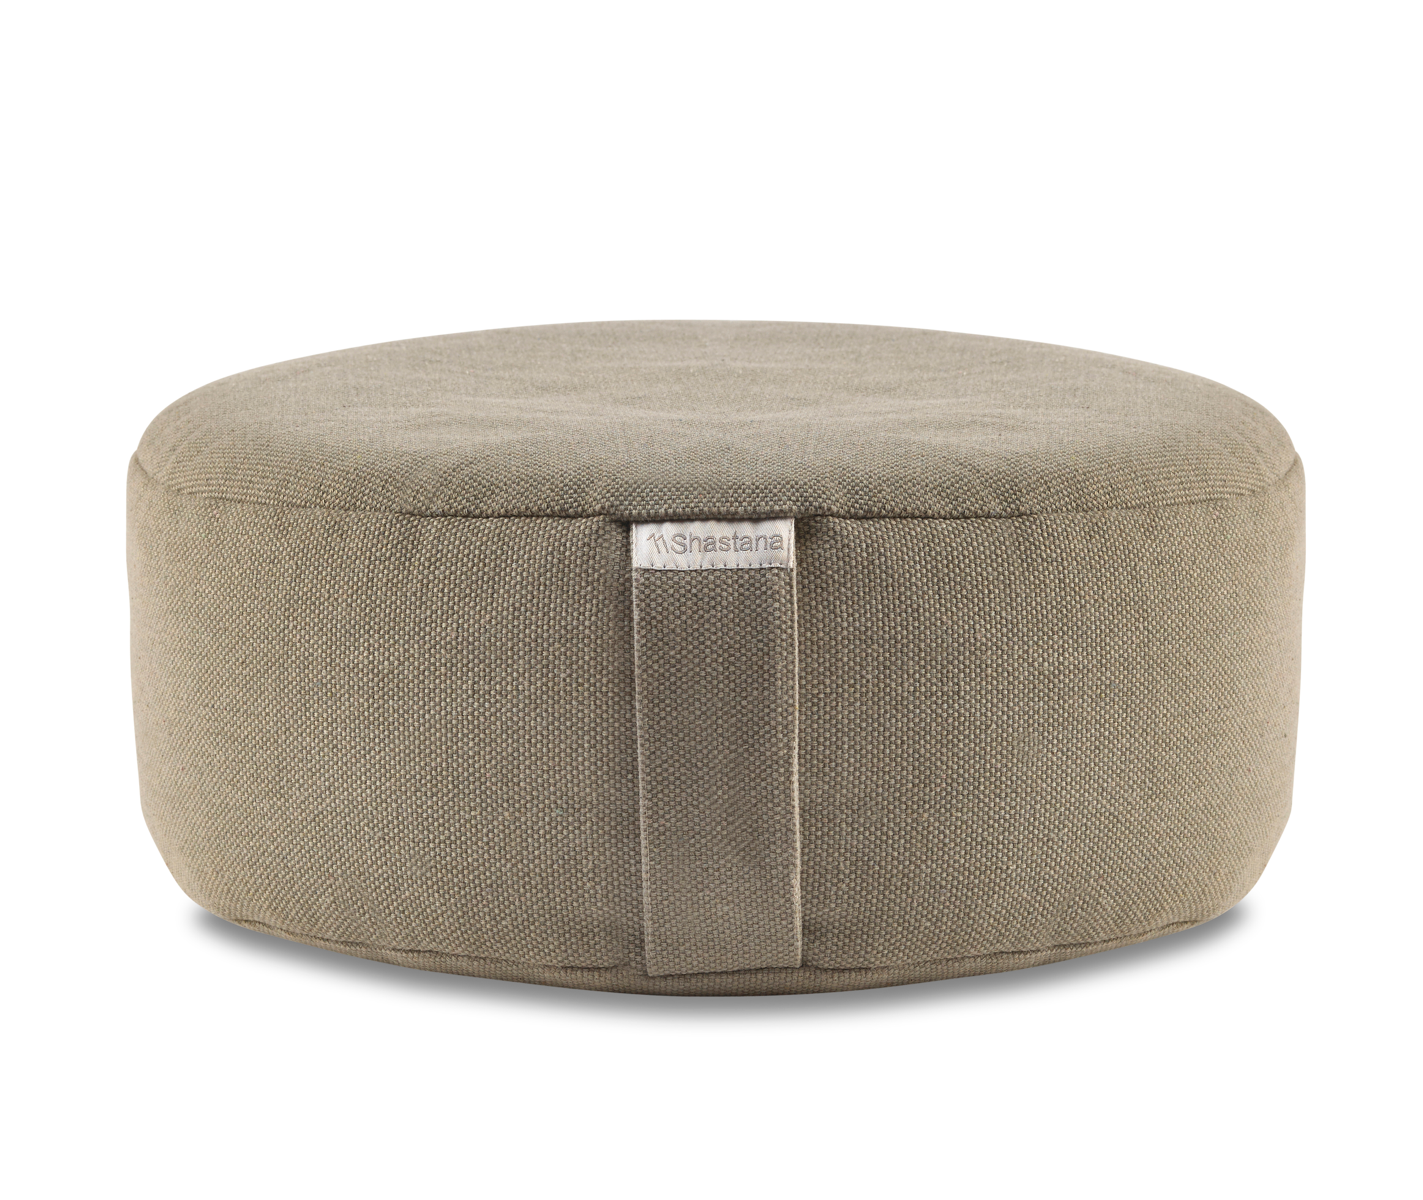 Shastana XL Meditation Cushion